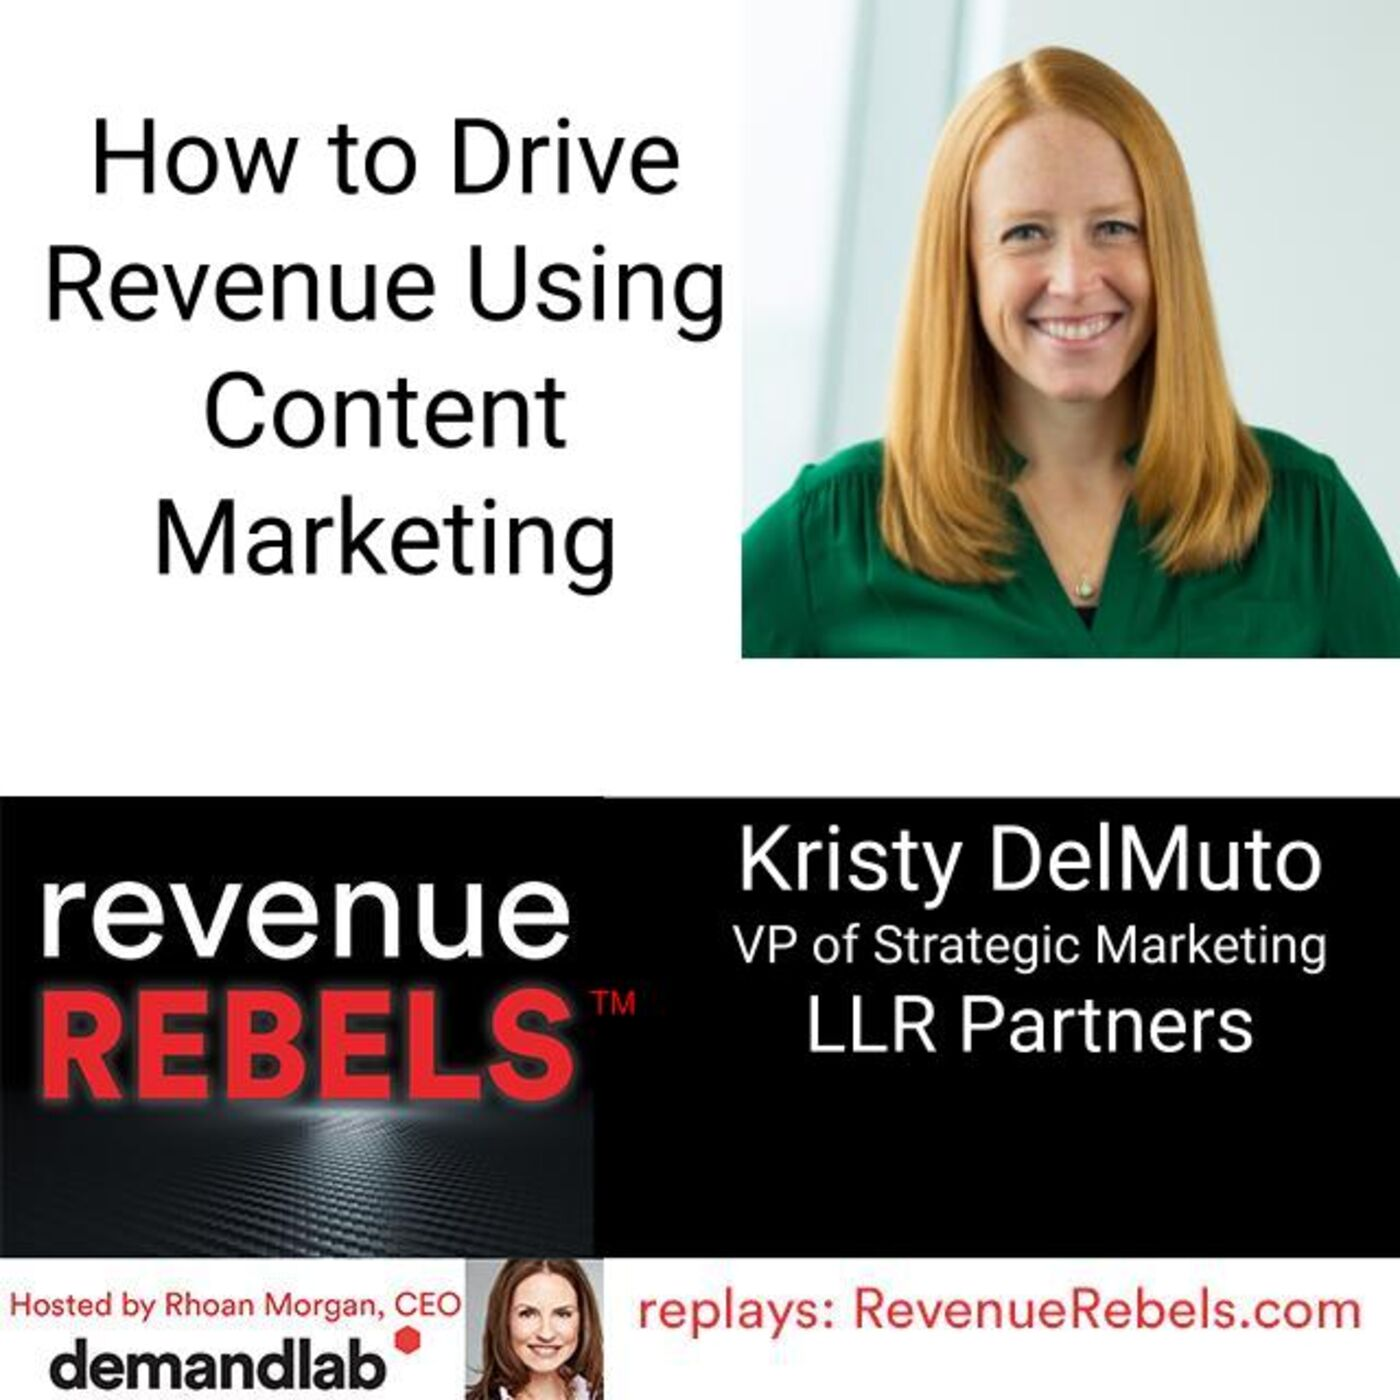 How to Drive Revenue Using Content Marketing